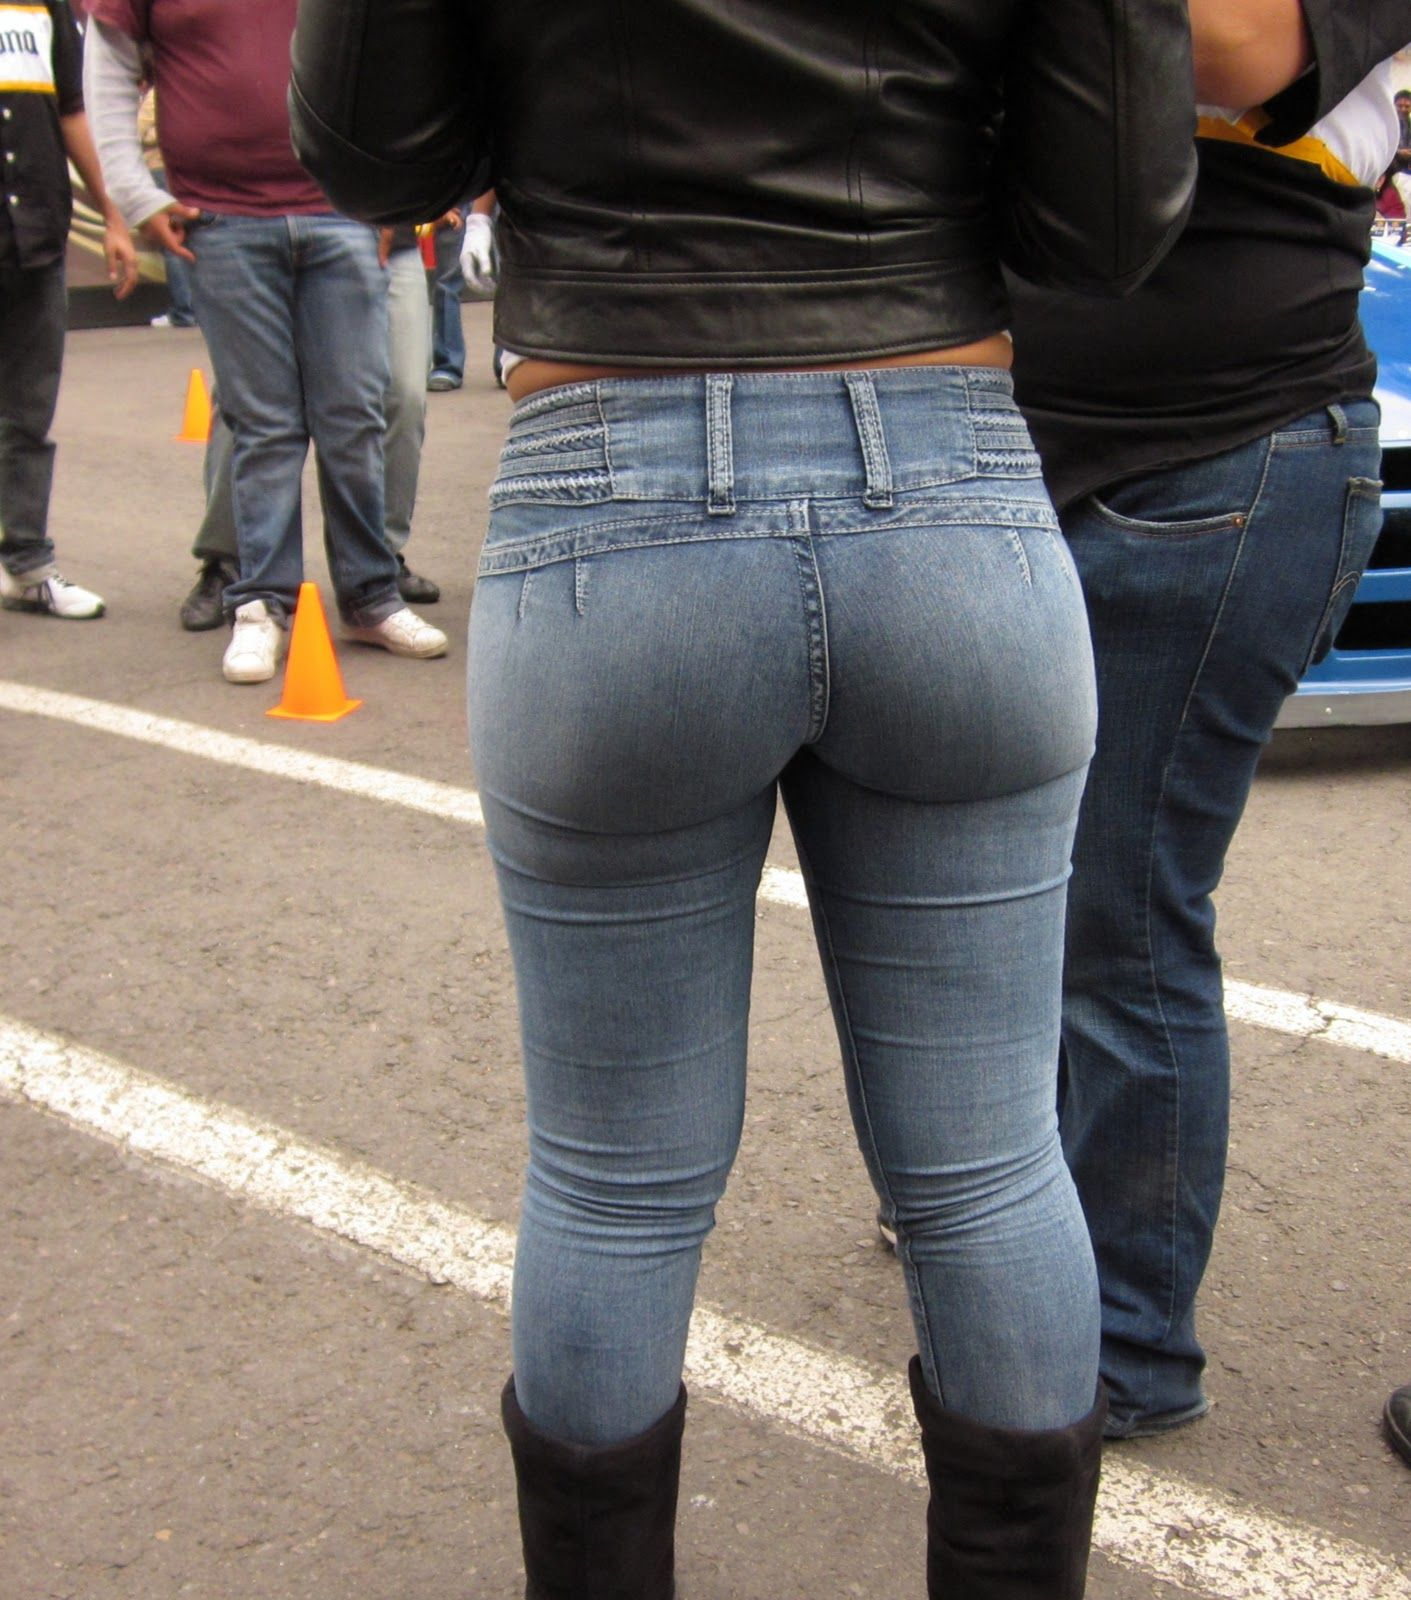 Candid milf ass denim jeans